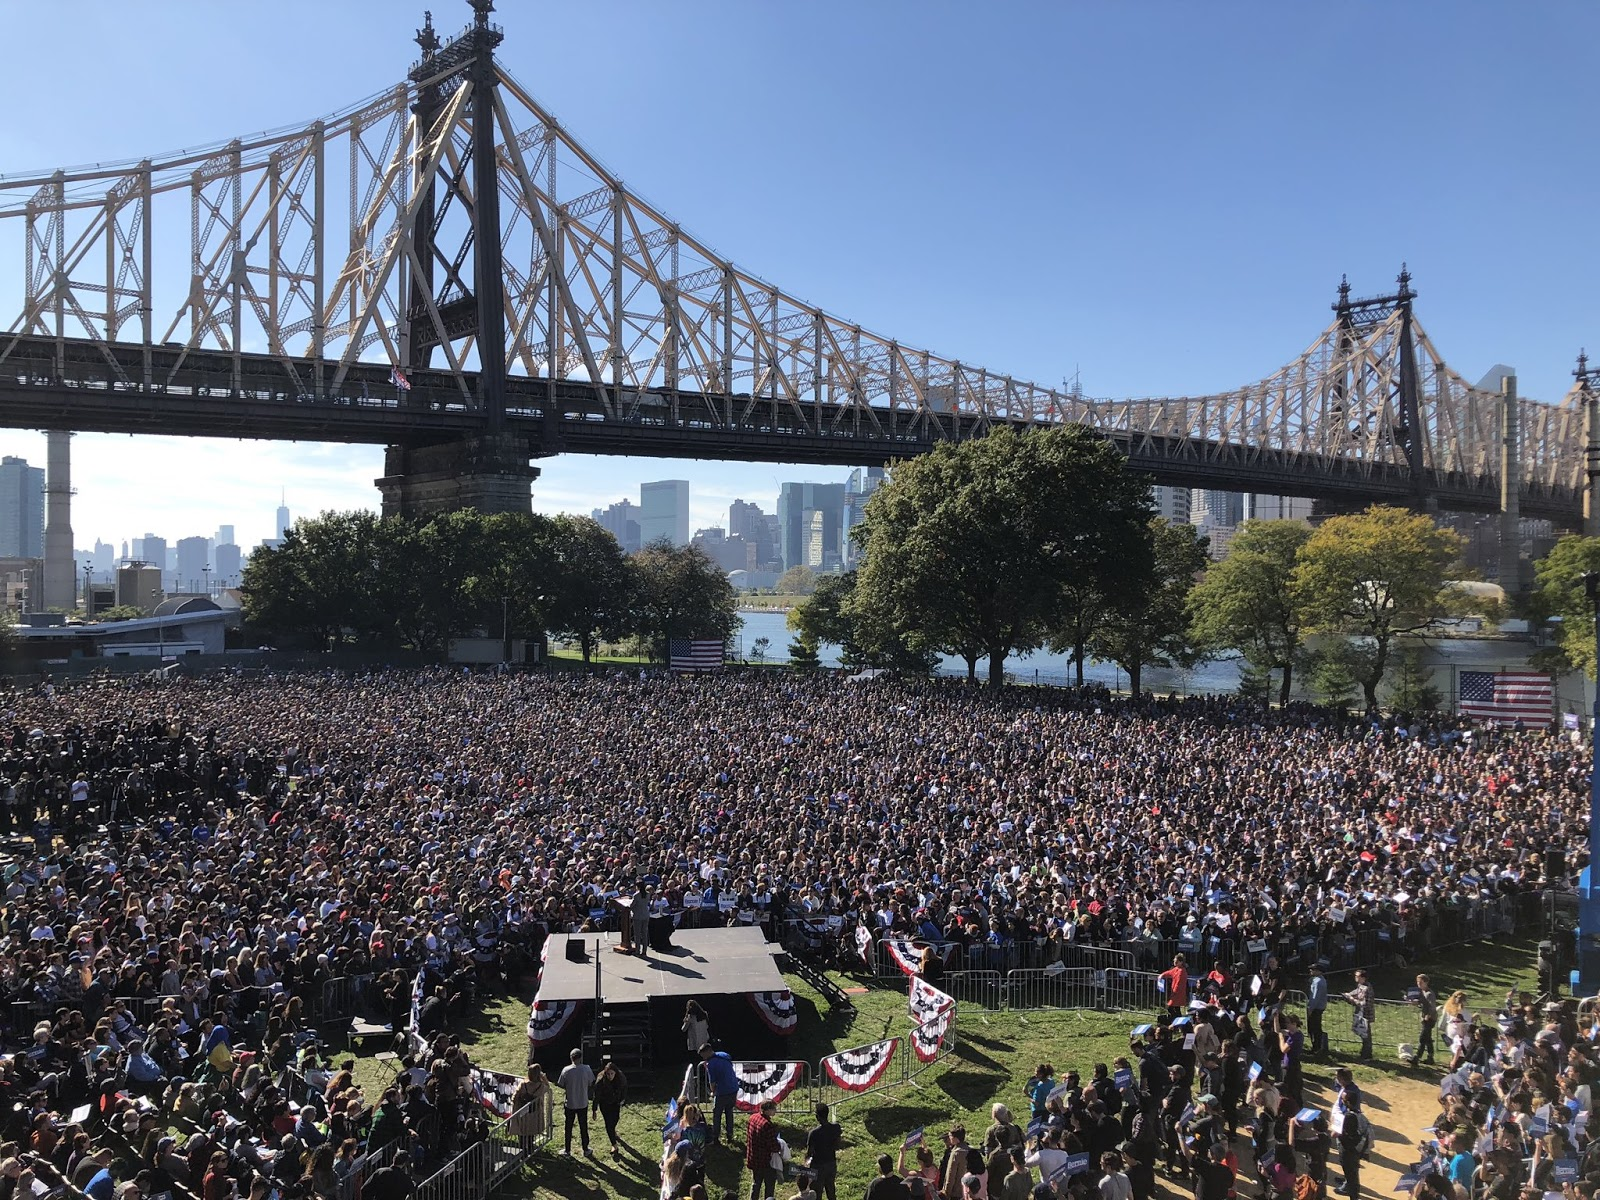 Photo of the crowd at the rally in Queens